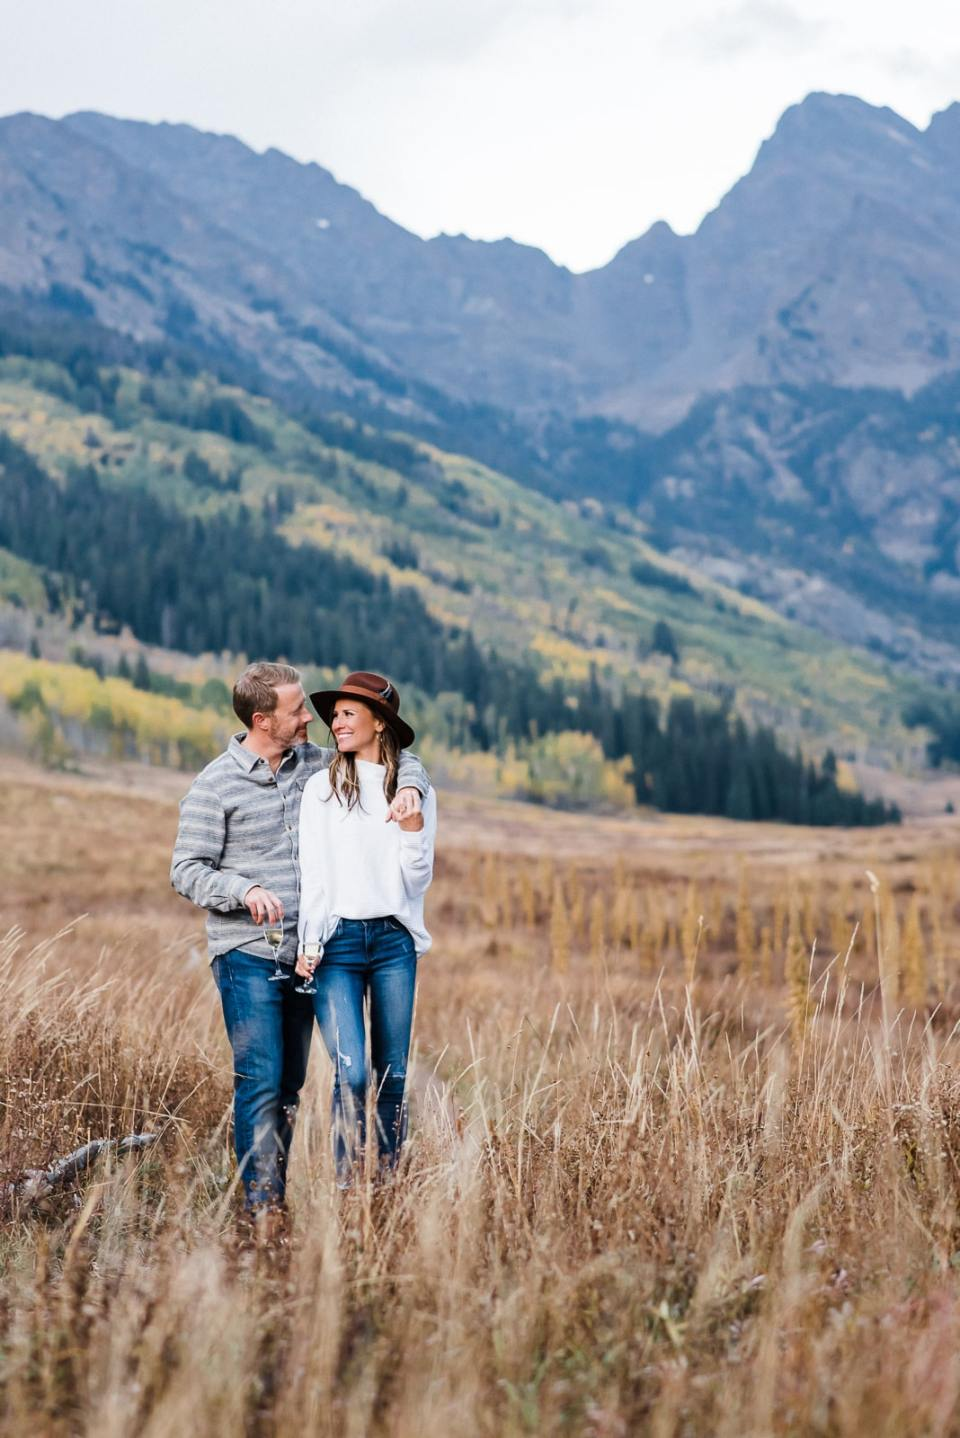 Engagement photos by Colorado mountains